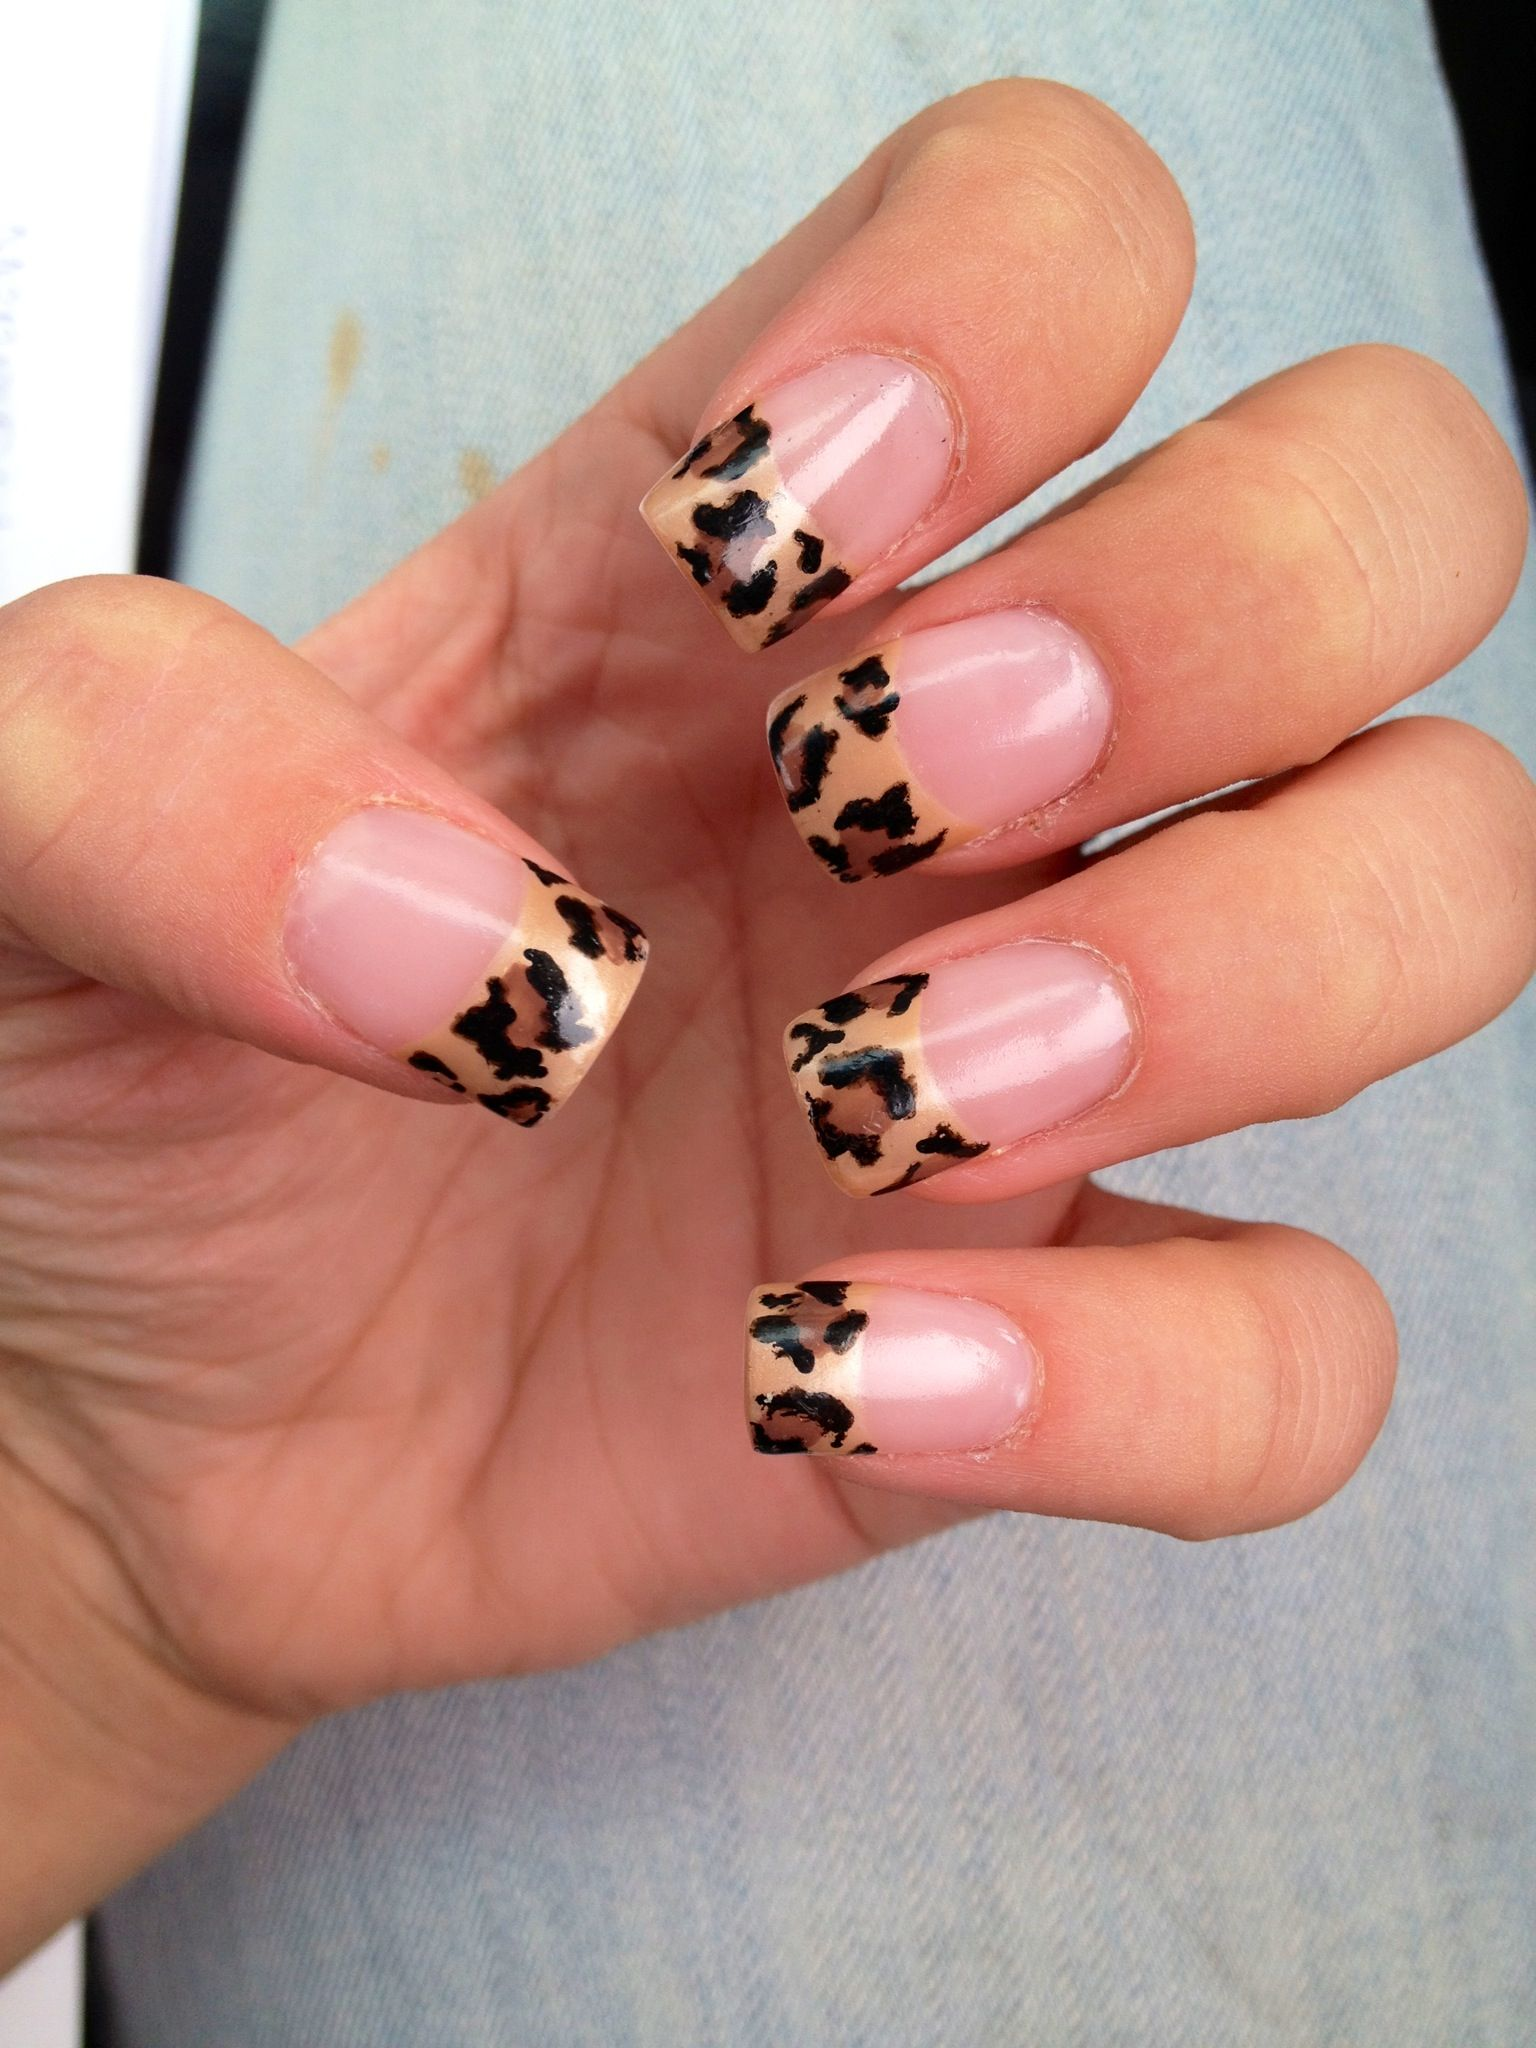 Carlybow Nails: Leopard Print Nail Tips. Acrylic Freehand Nail Tip Design